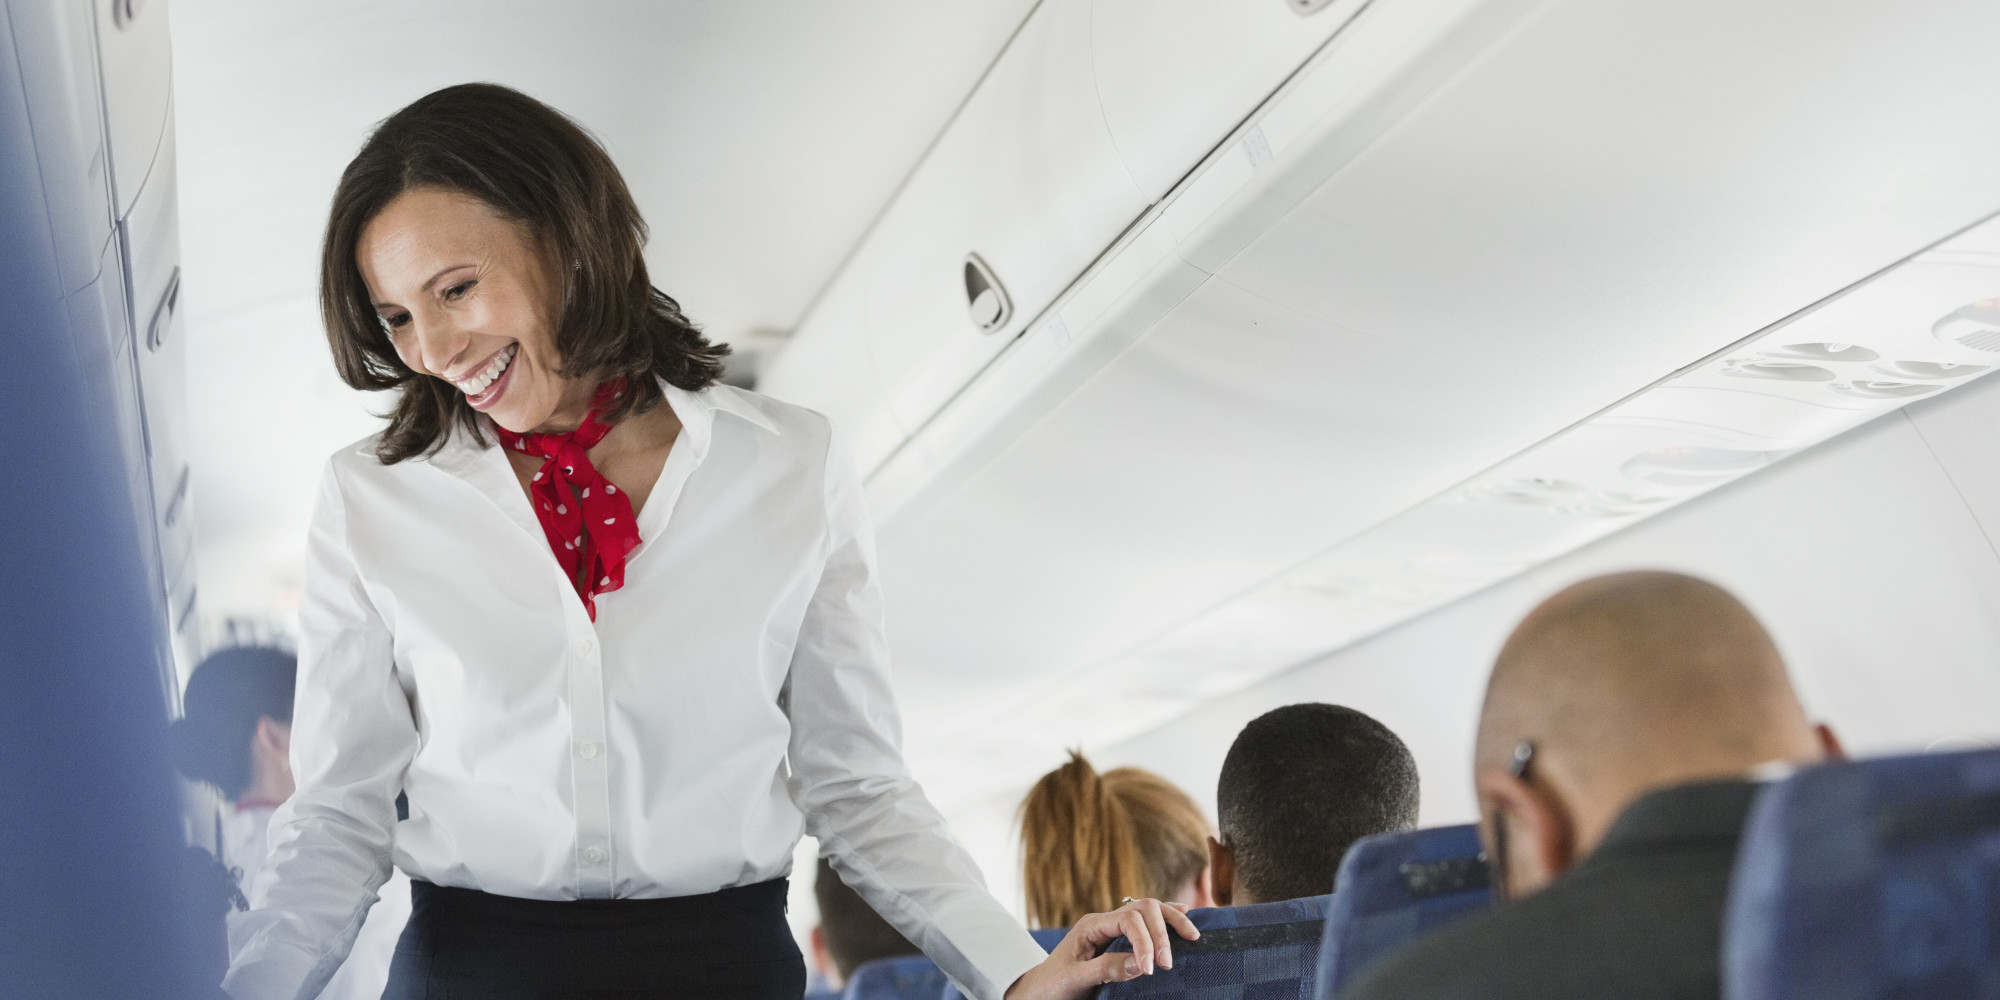 Want To Date A Flight Attendant 11 Crucial Facts You Must Know